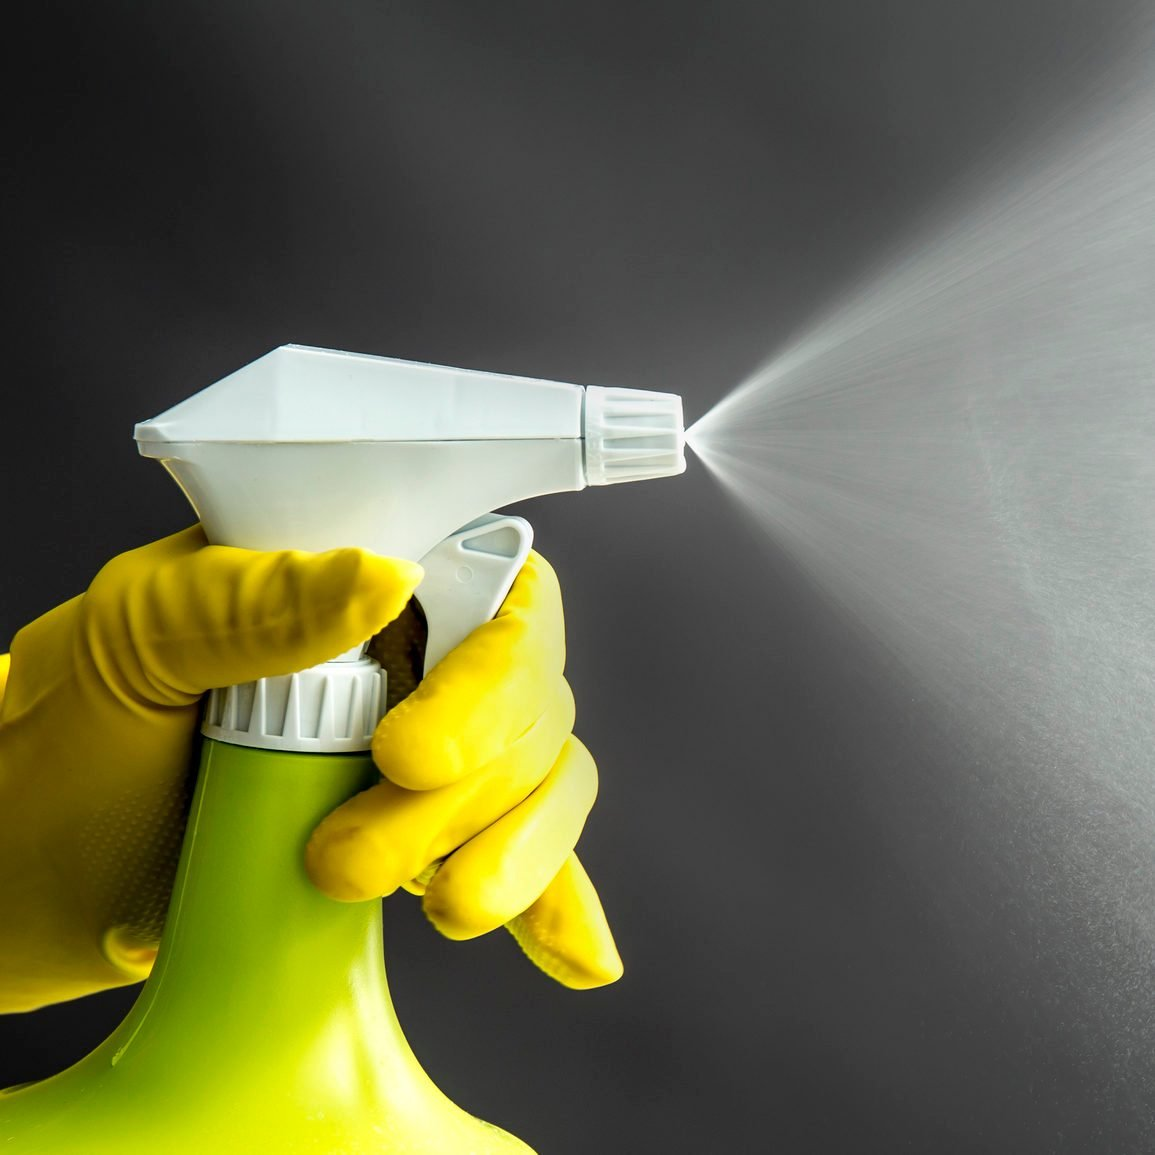 Woman wearing yellow rubber gloves using green spray bottle and spraying liquid mist in air, cool lighting effect. Lot of copy space.